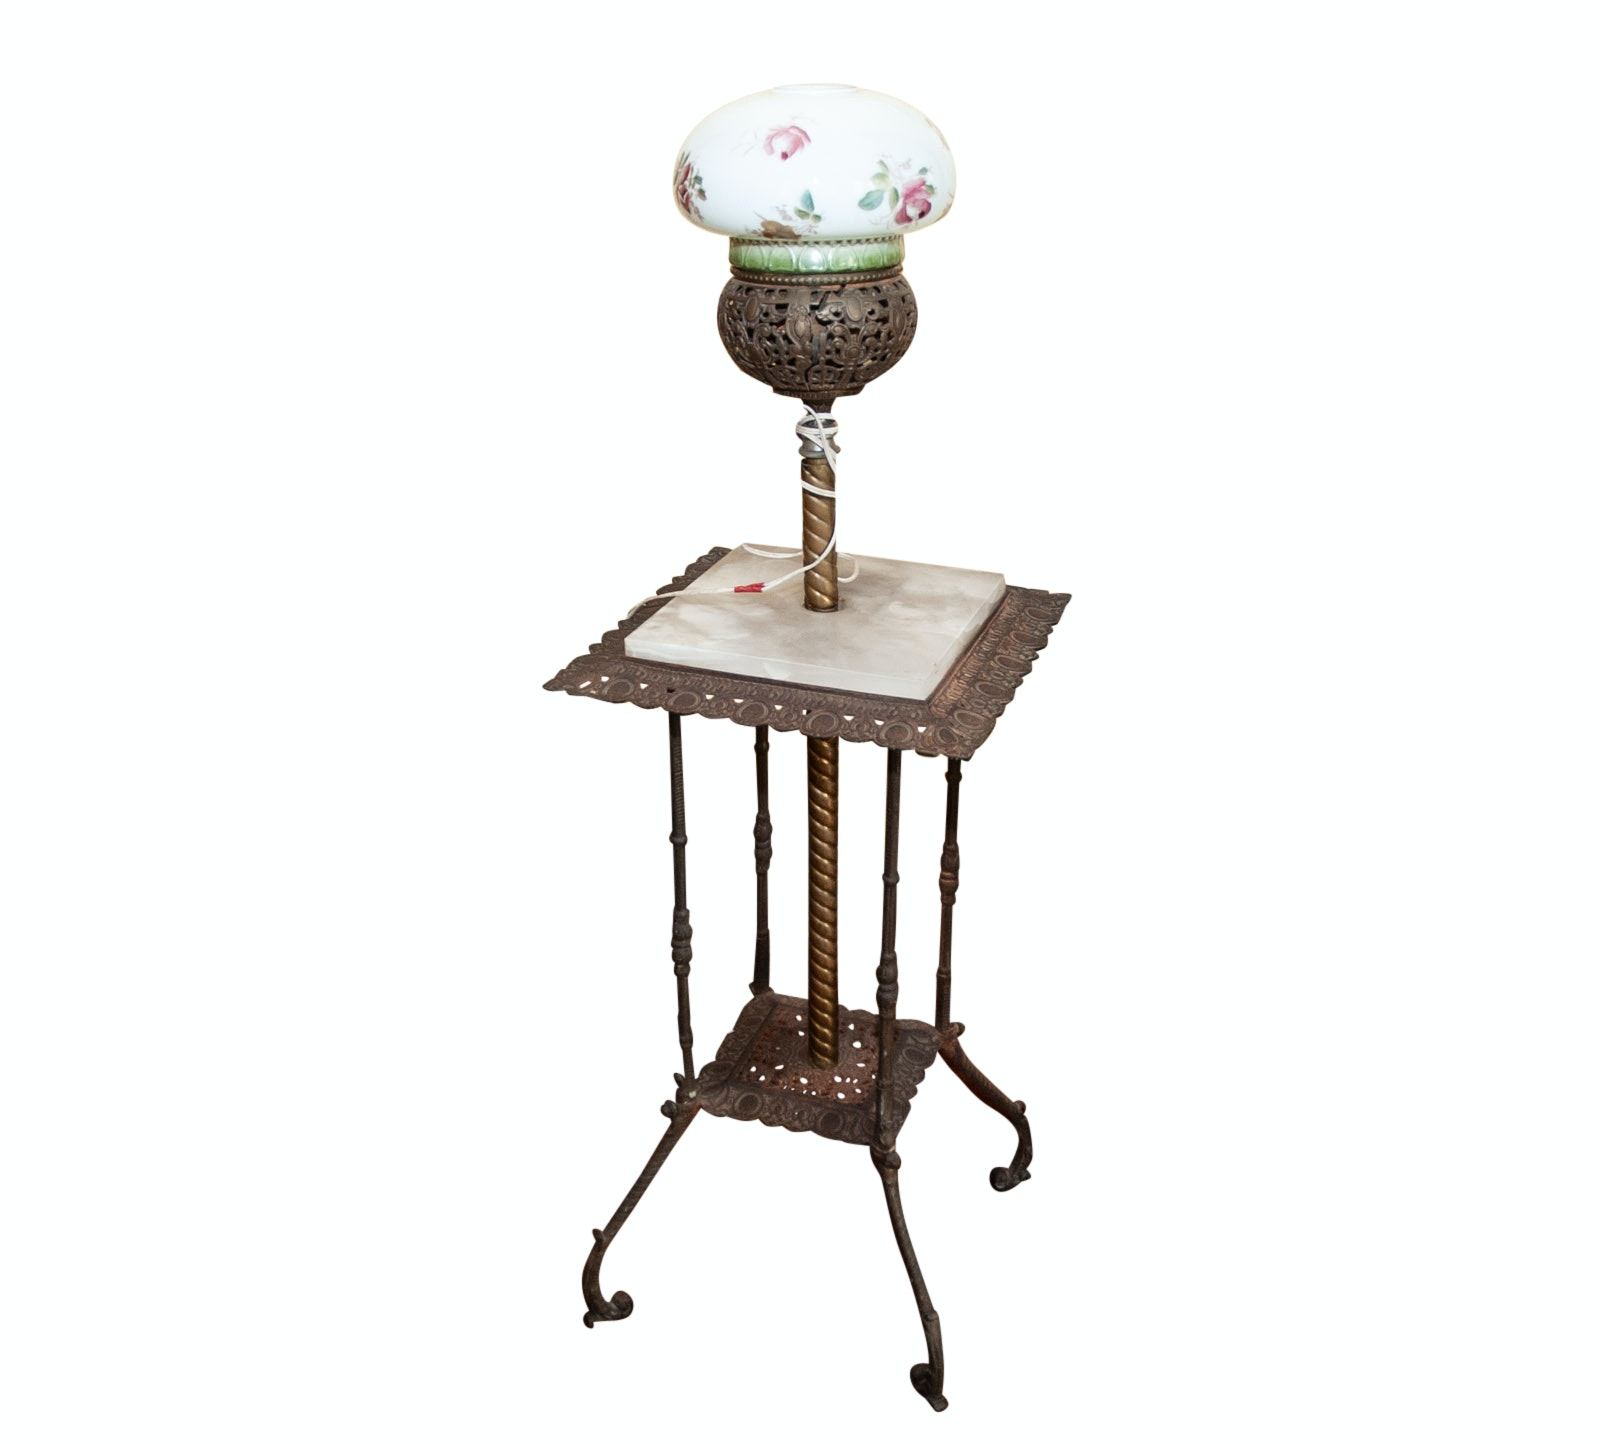 Victorian Hand-Painted Glass and Marble Floor Lamp Table